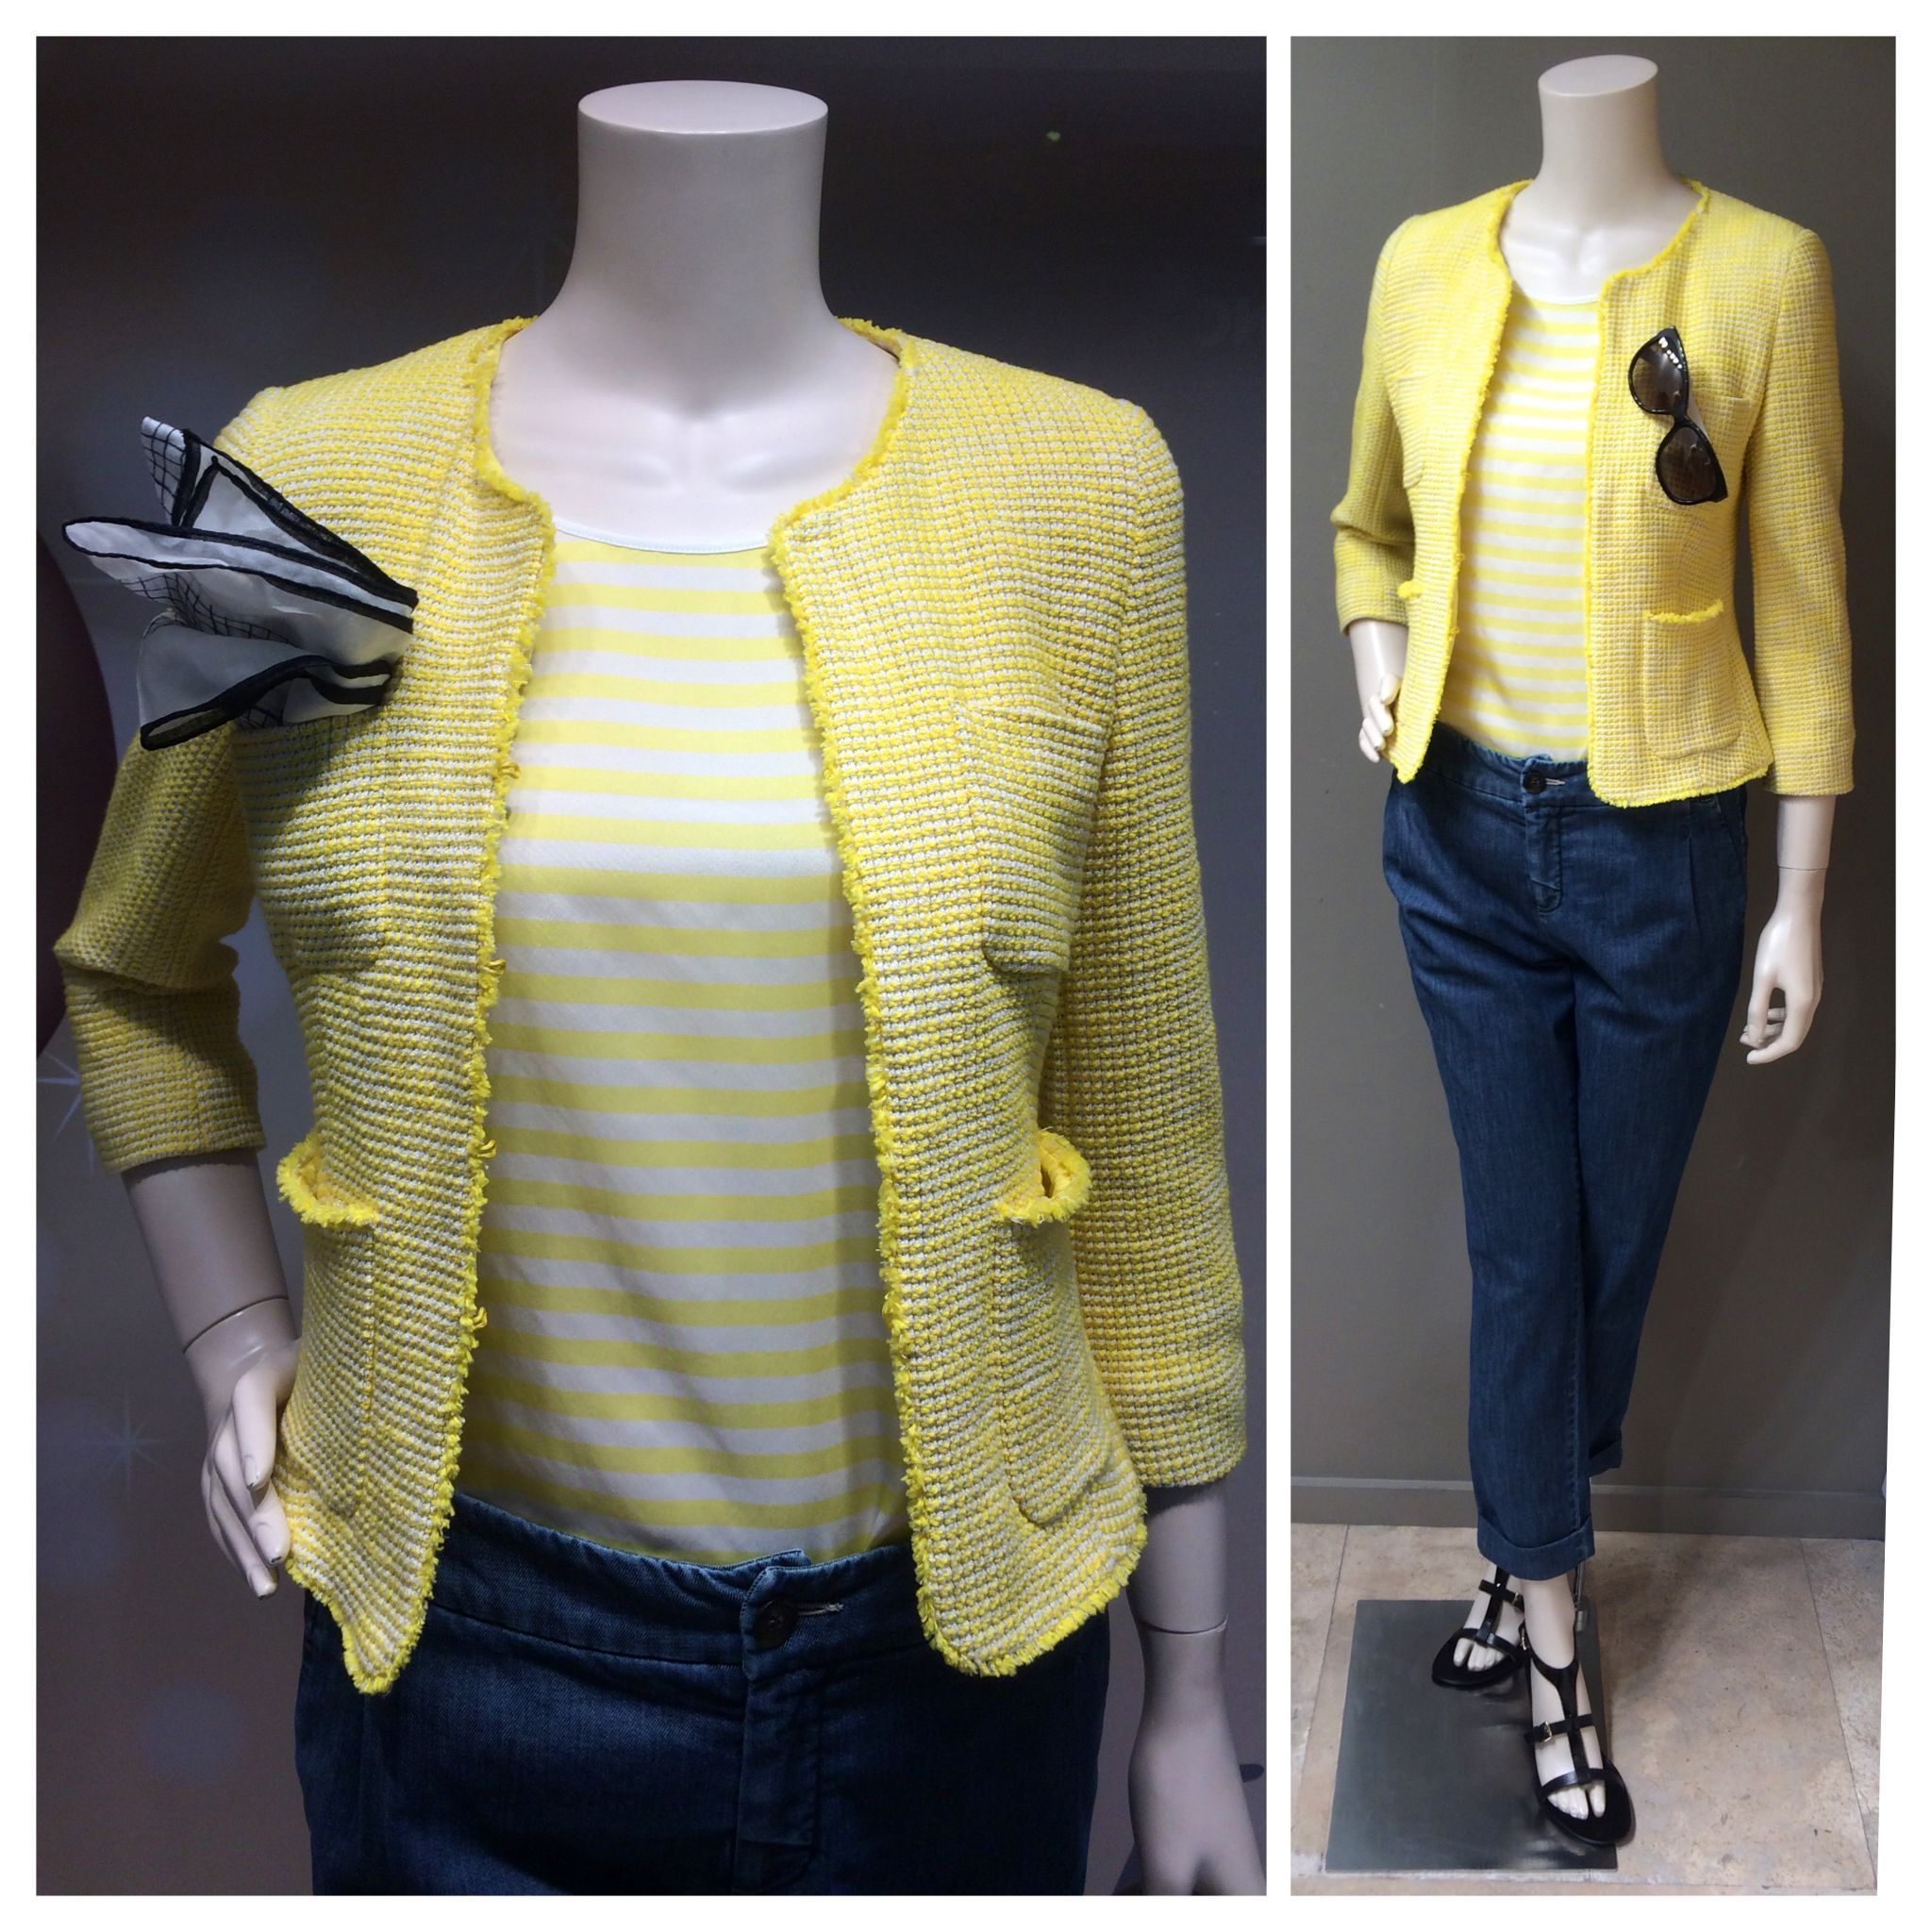 Max Mara SS 2014 Collection: Weekend label soft yellow cotton ¾ ...